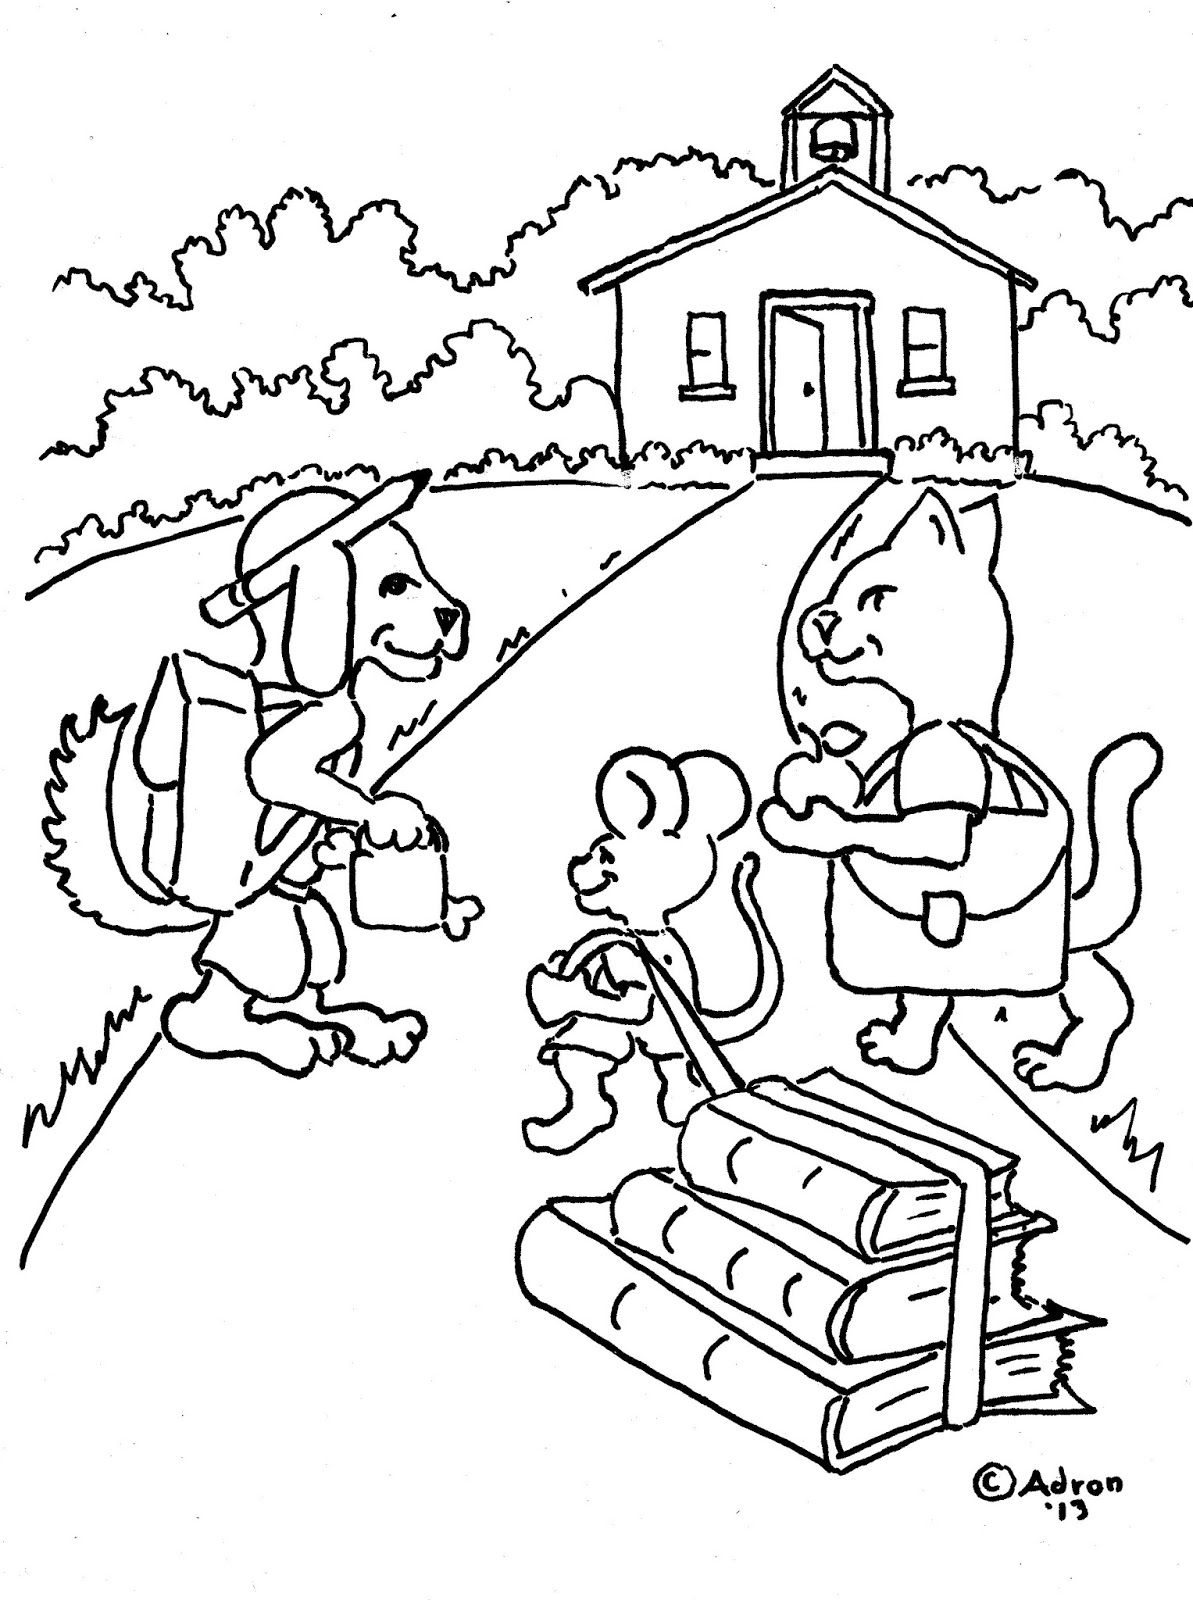 Coloring Pages for Kids by Mr. Adron: Animals Go To School